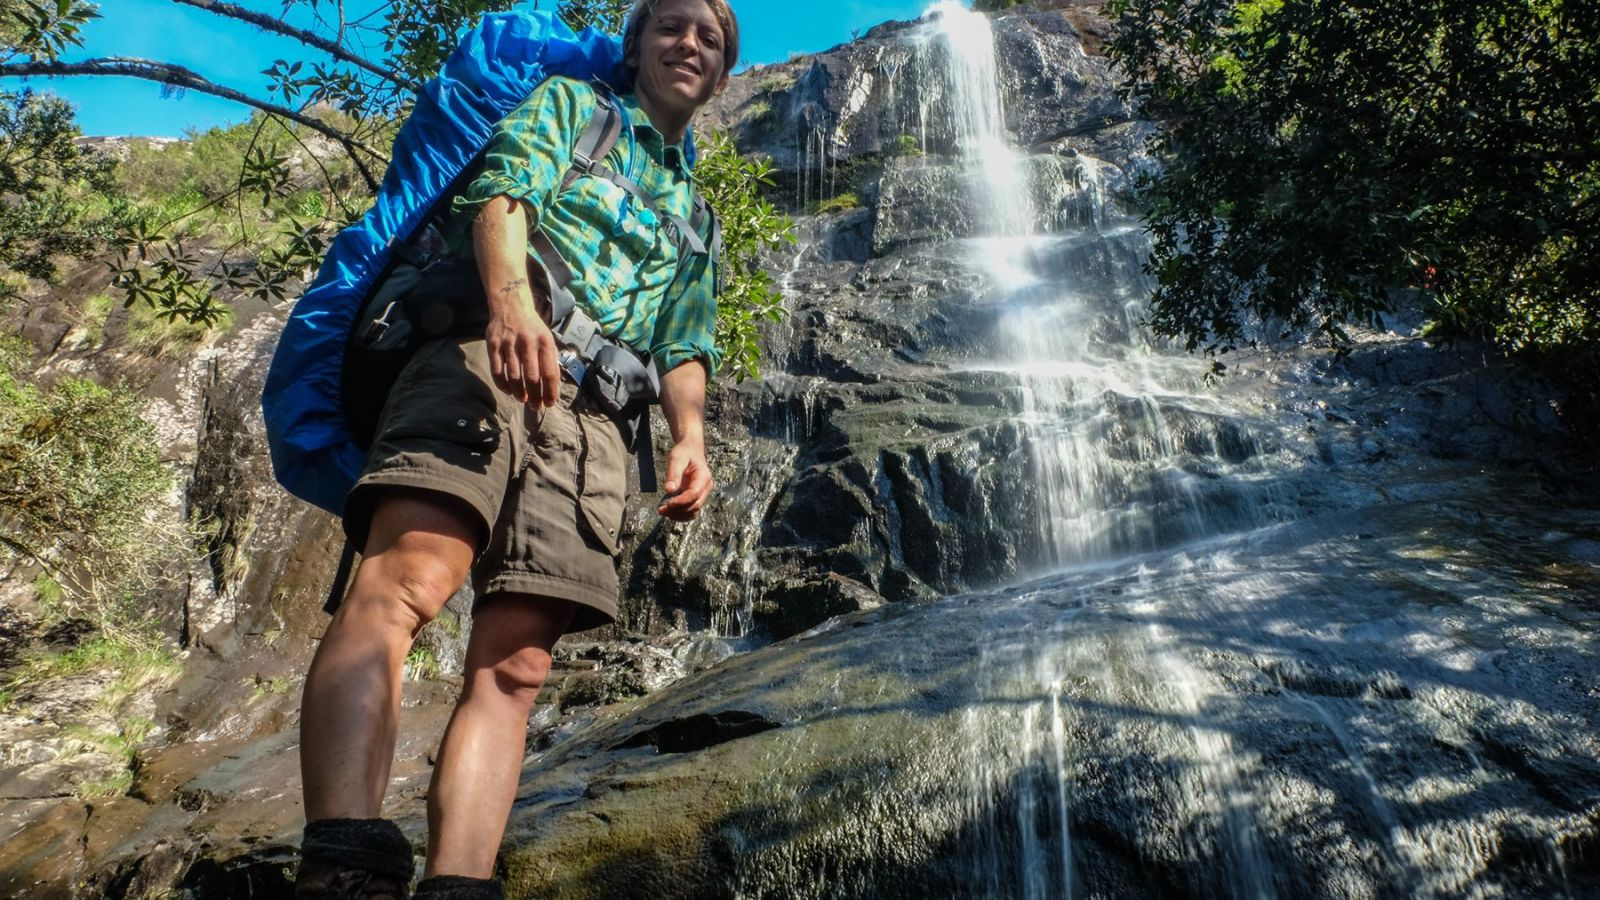 a photo of a hiker in front of a waterfall on the amathole trail.